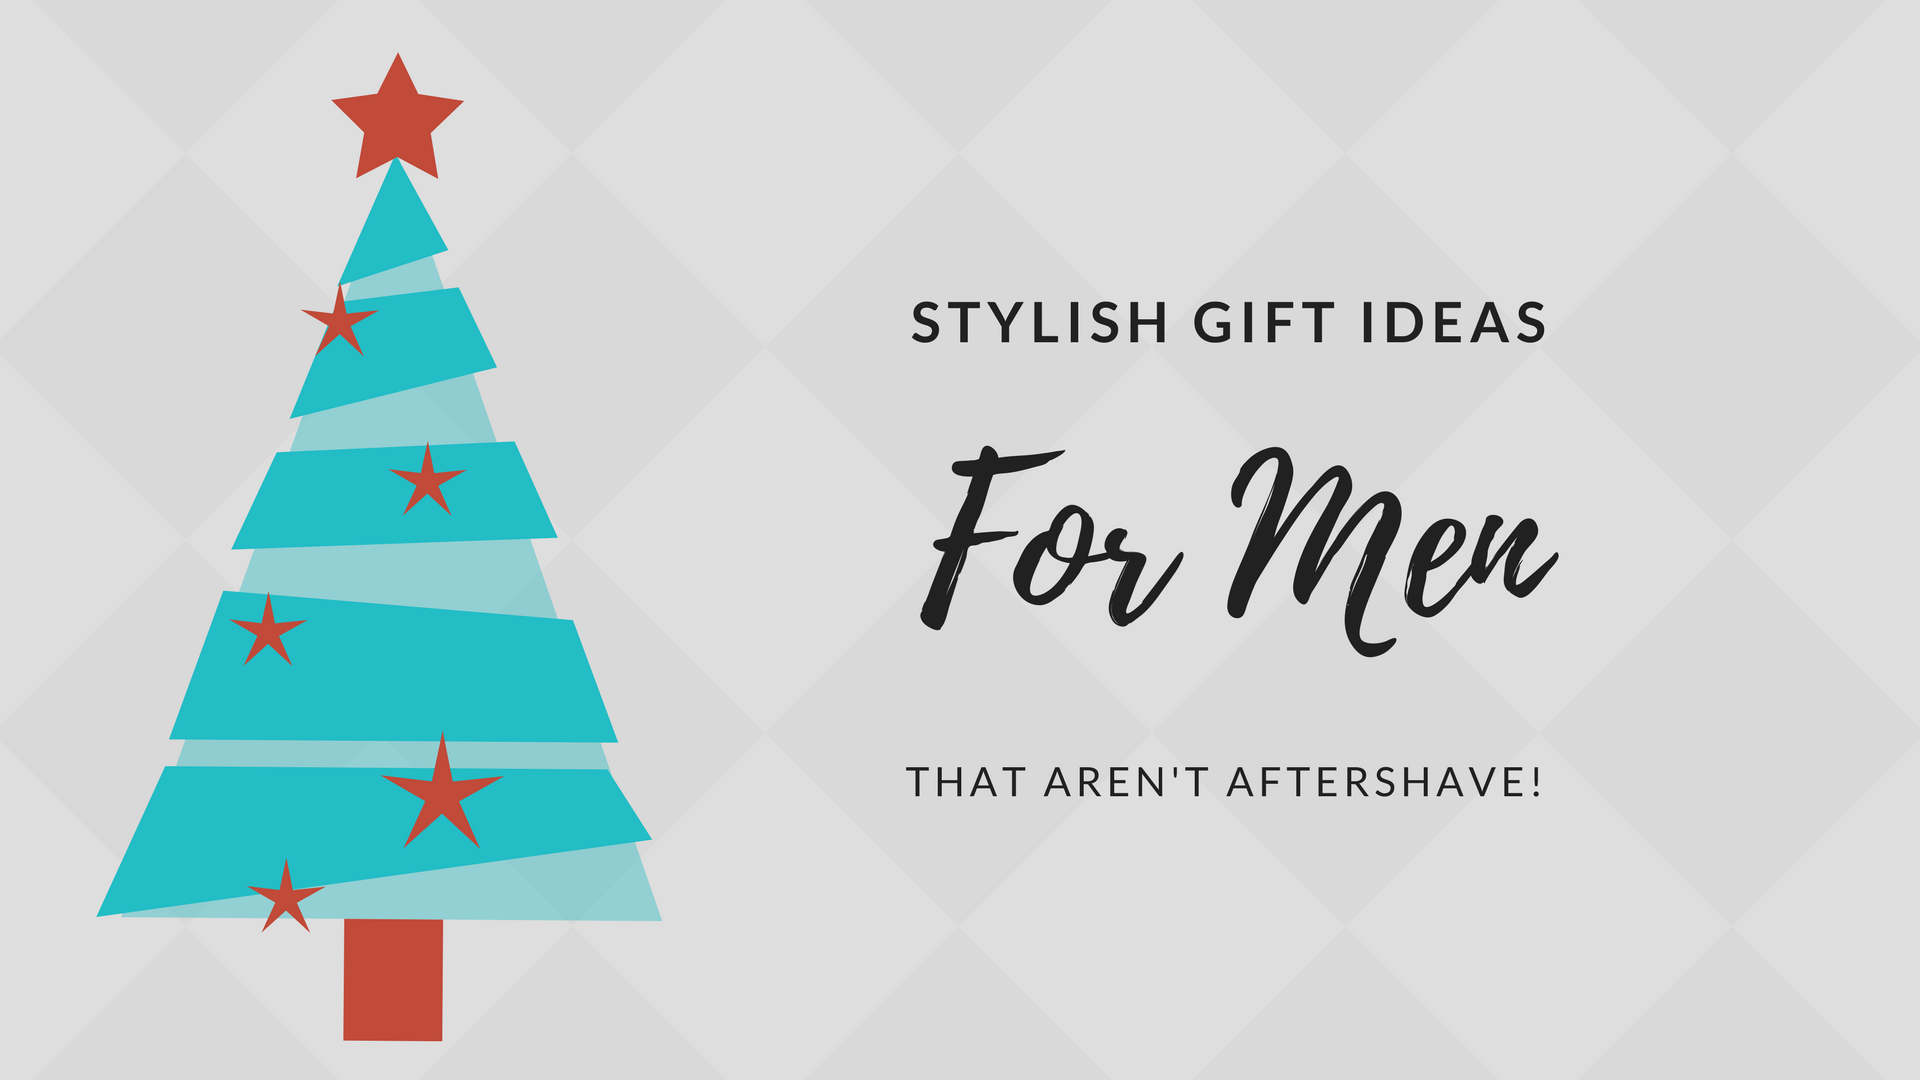 Walter & May Stylish Gift Ideas For Men That Aren't Aftershave Gift Guide For Him 2017